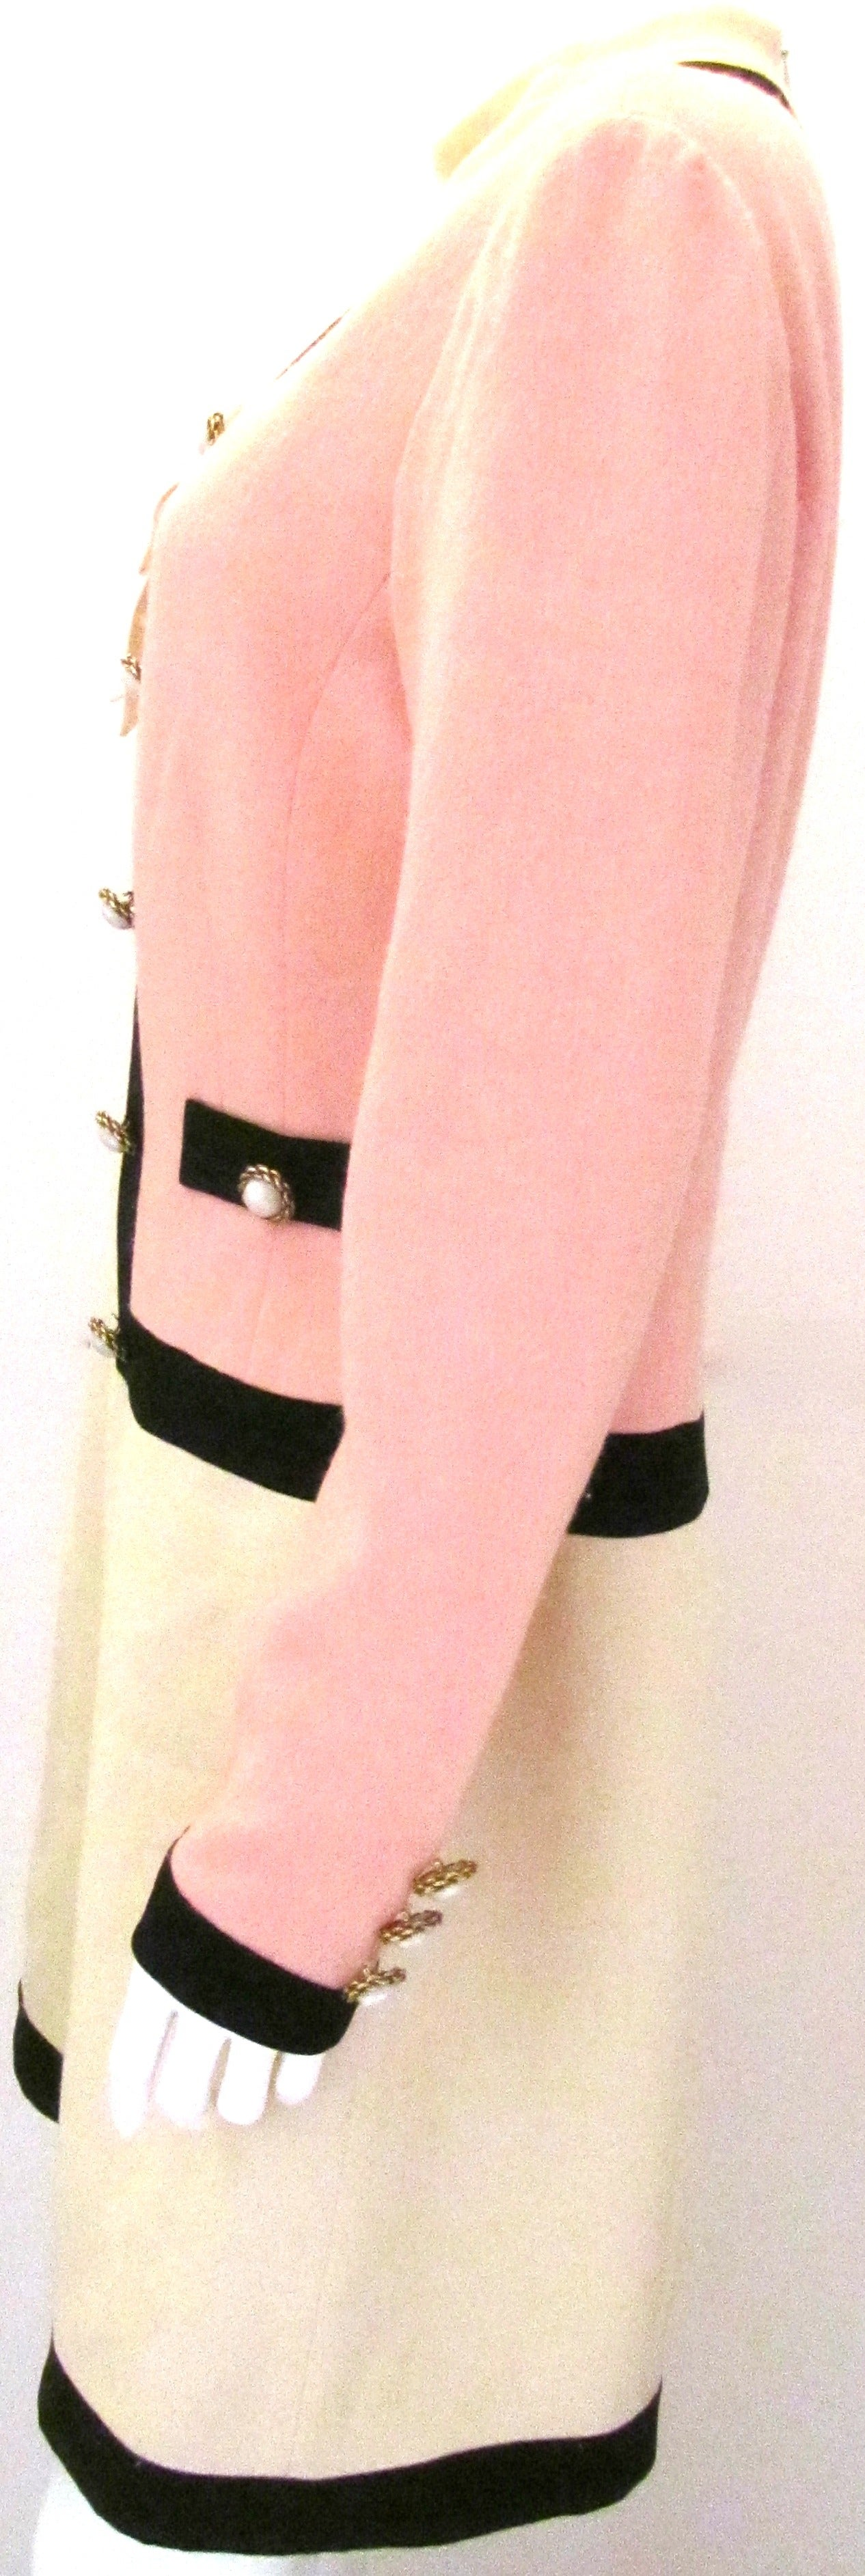 Moschino Runway Dress with Chanel Style Half Jacket In Excellent Condition For Sale In Boca Raton, FL